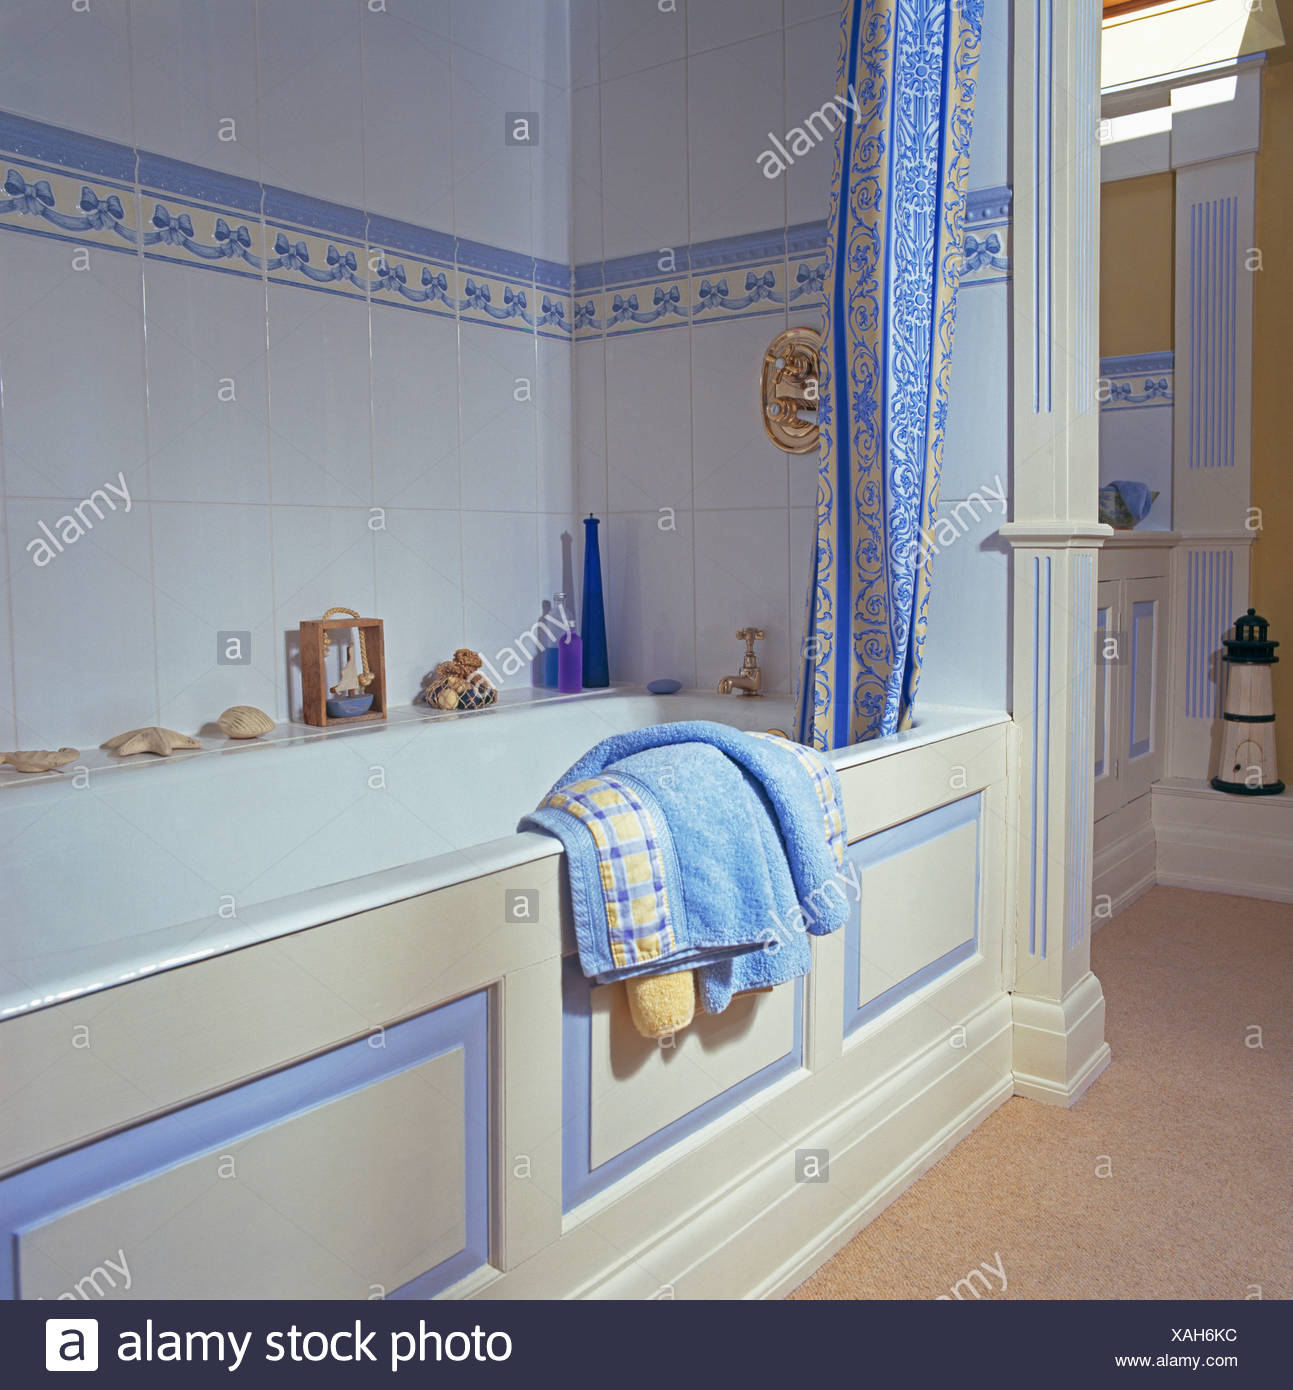 Blue+white shower curtain on bath in bathroom with blue tiled border ...